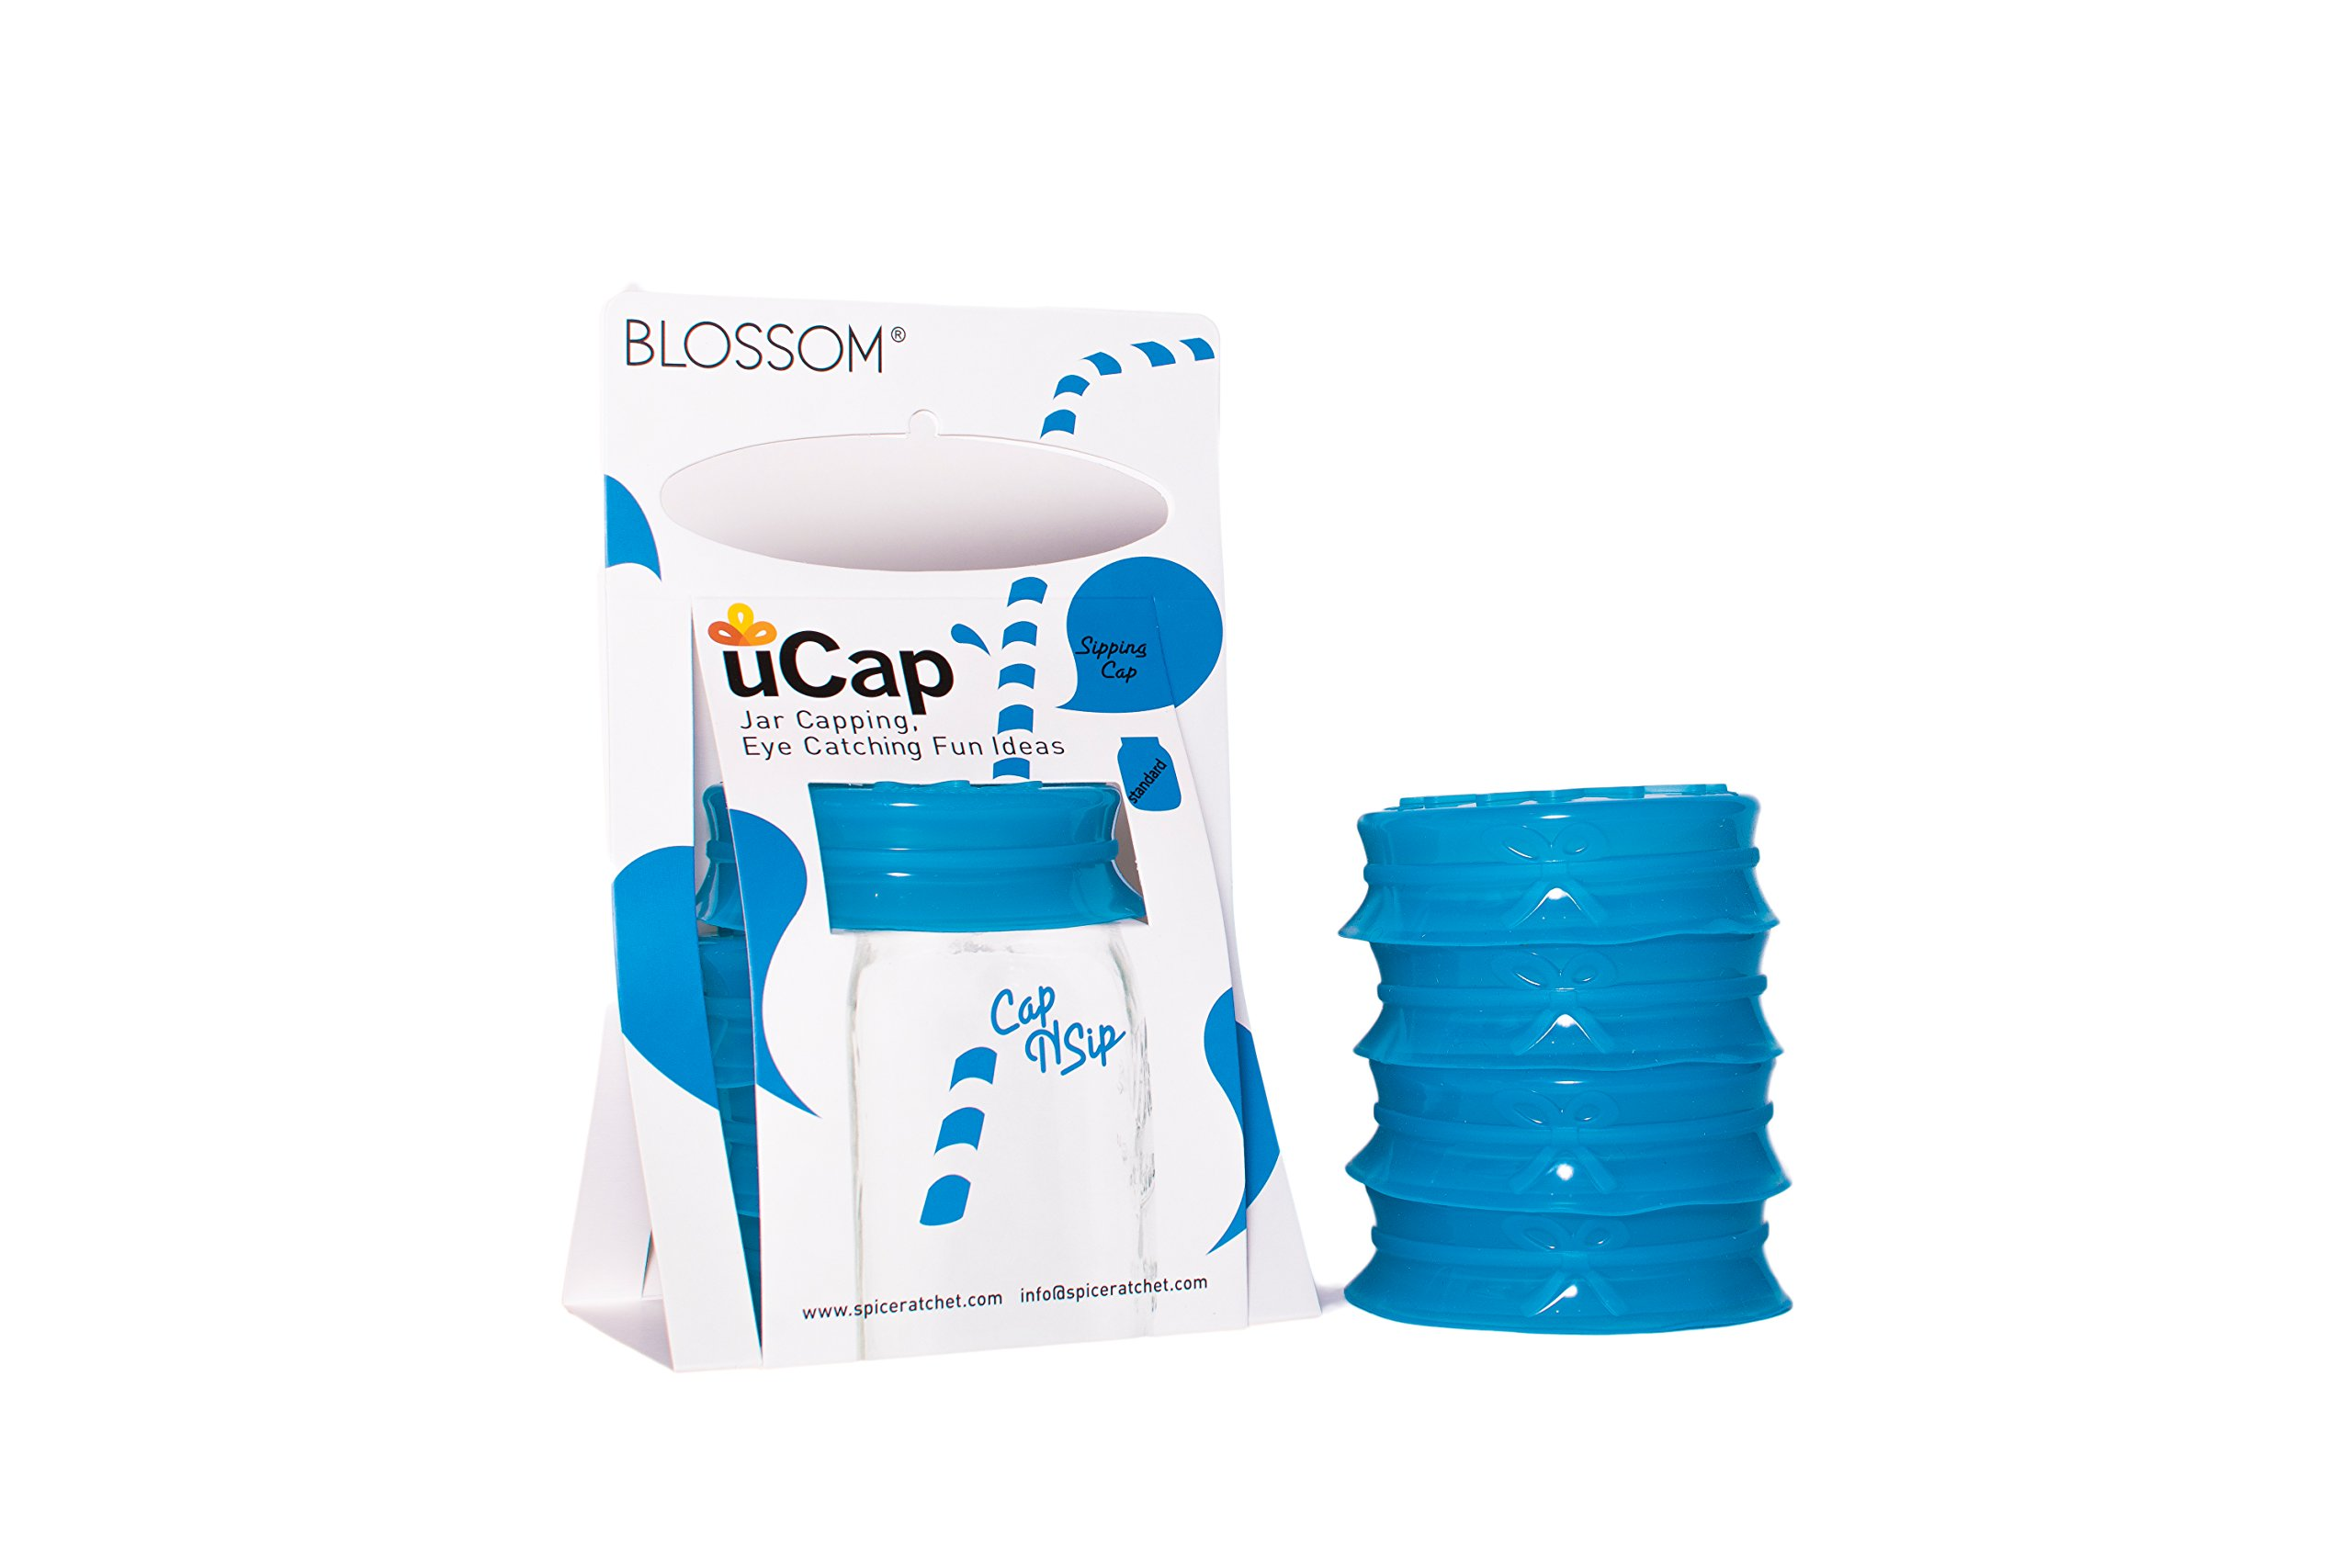 Blossom Mason and Canning Jar Sipping and Drinking Lid Caps, Silicone, For Wide Mouth Size Mason Jars, 4-Inches; Blue; Set of 4 by Spice Ratchet (Image #6)